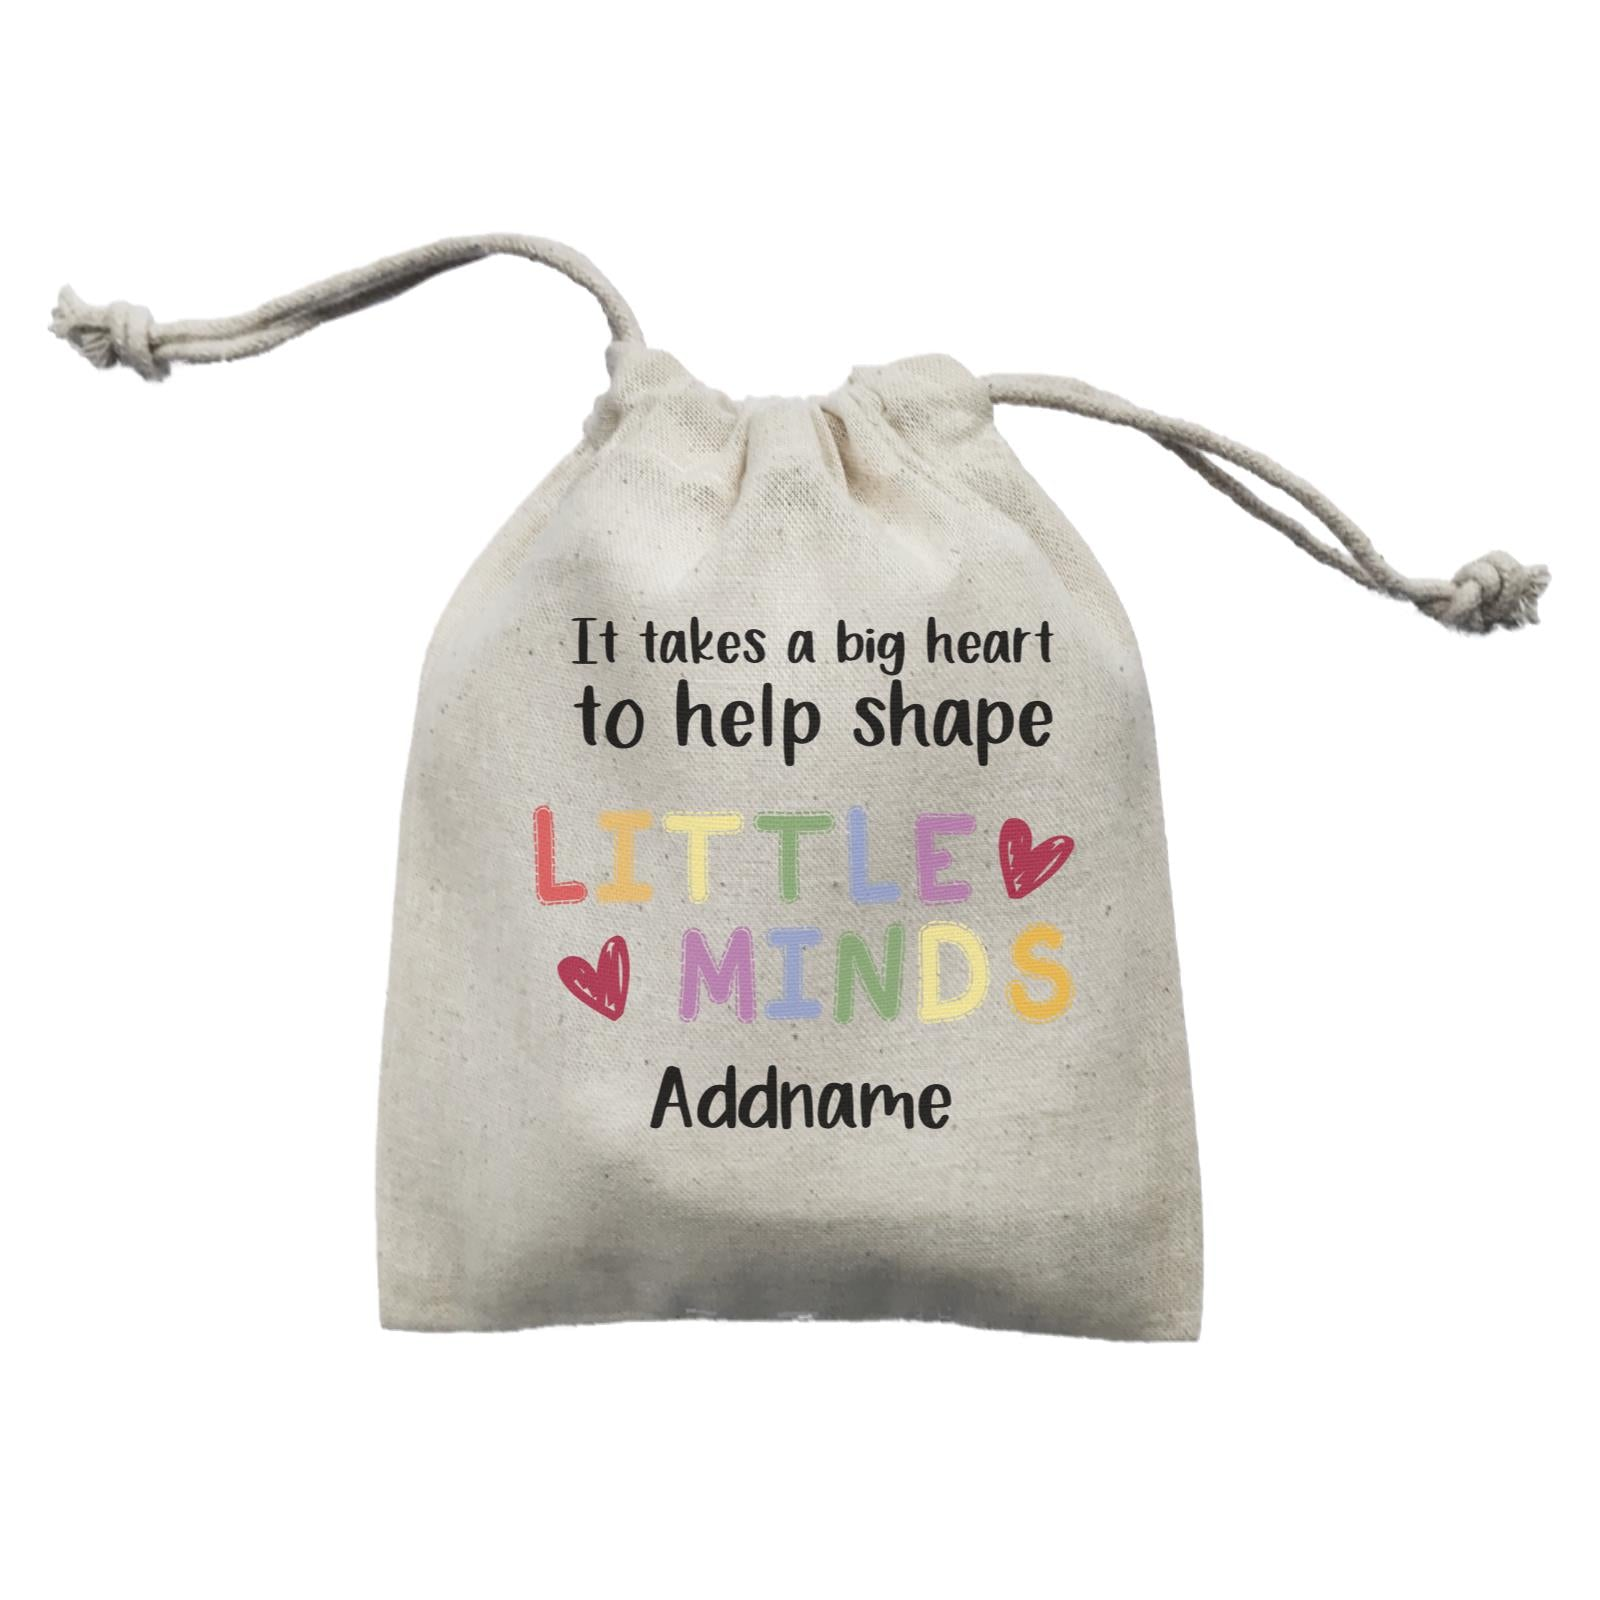 Teacher Quotes 2 It Takes A Big Heart To Help Shape Little Minds Addname Mini Accessories Mini Pouch